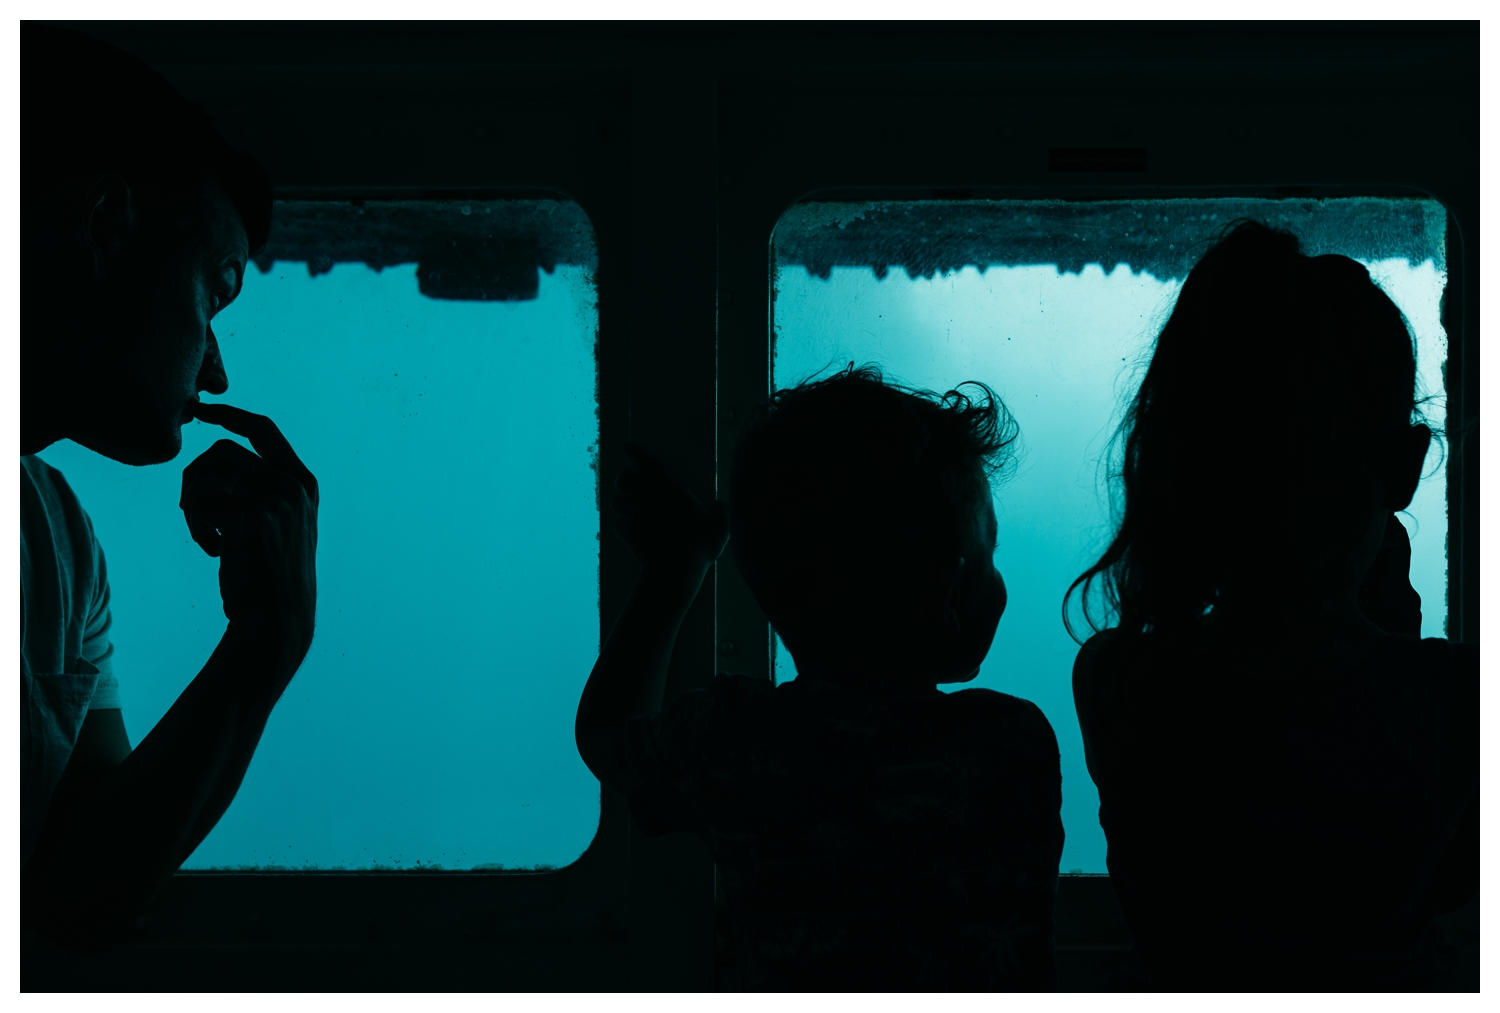 Family Silhouettes in Aruba Submarine.jpg